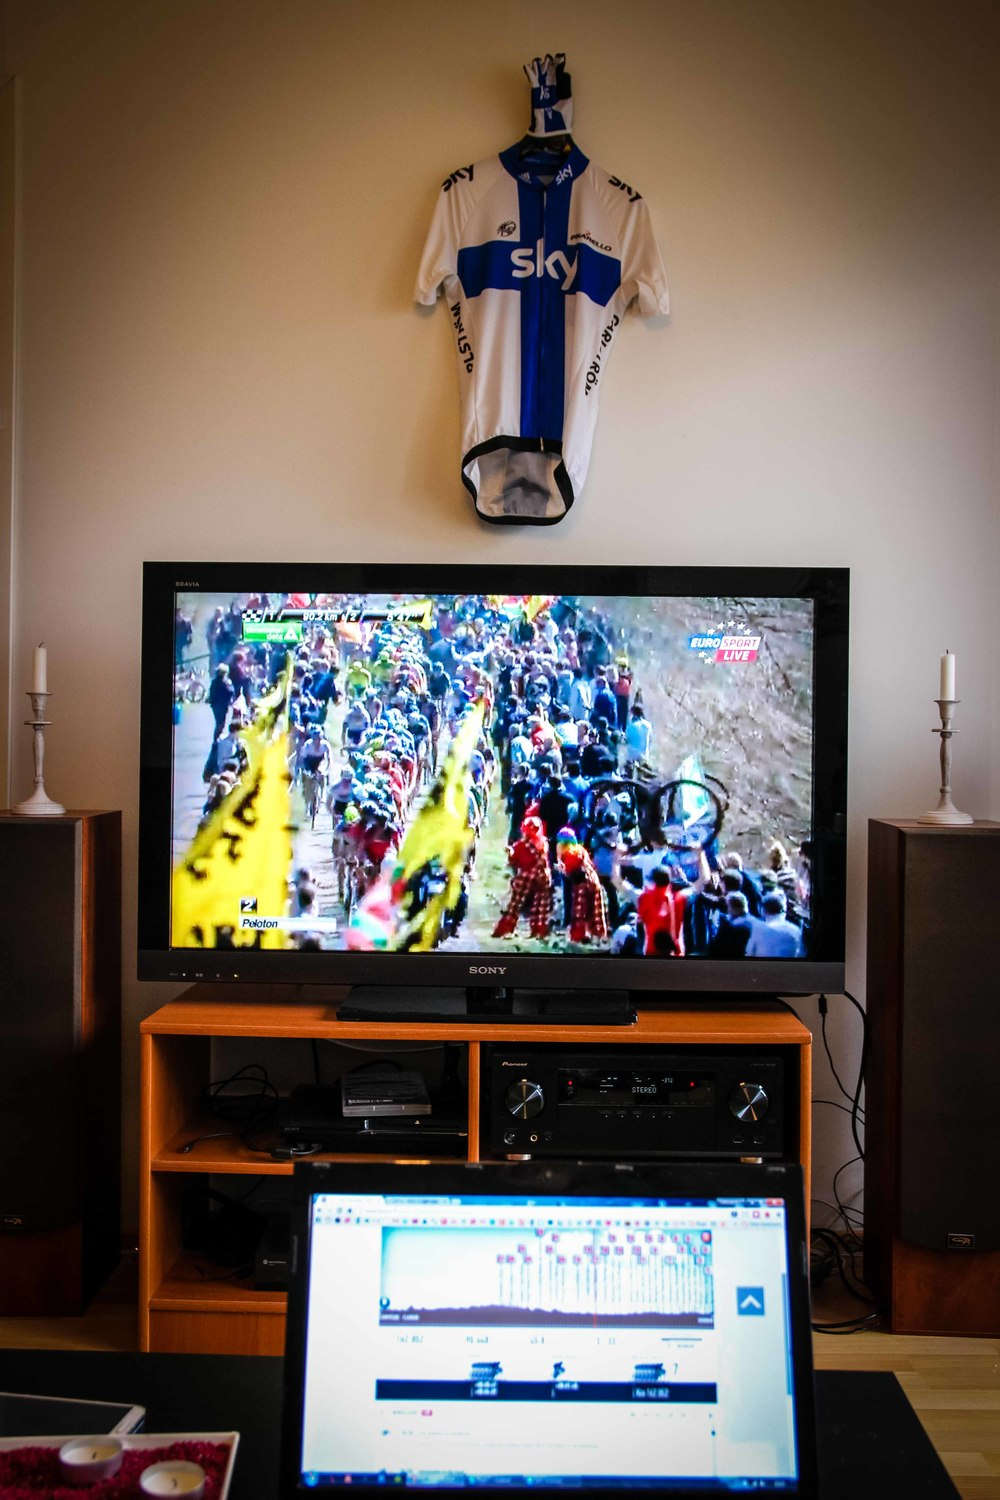 One of the greatest days in cycling, watching the Paris-Roubaix